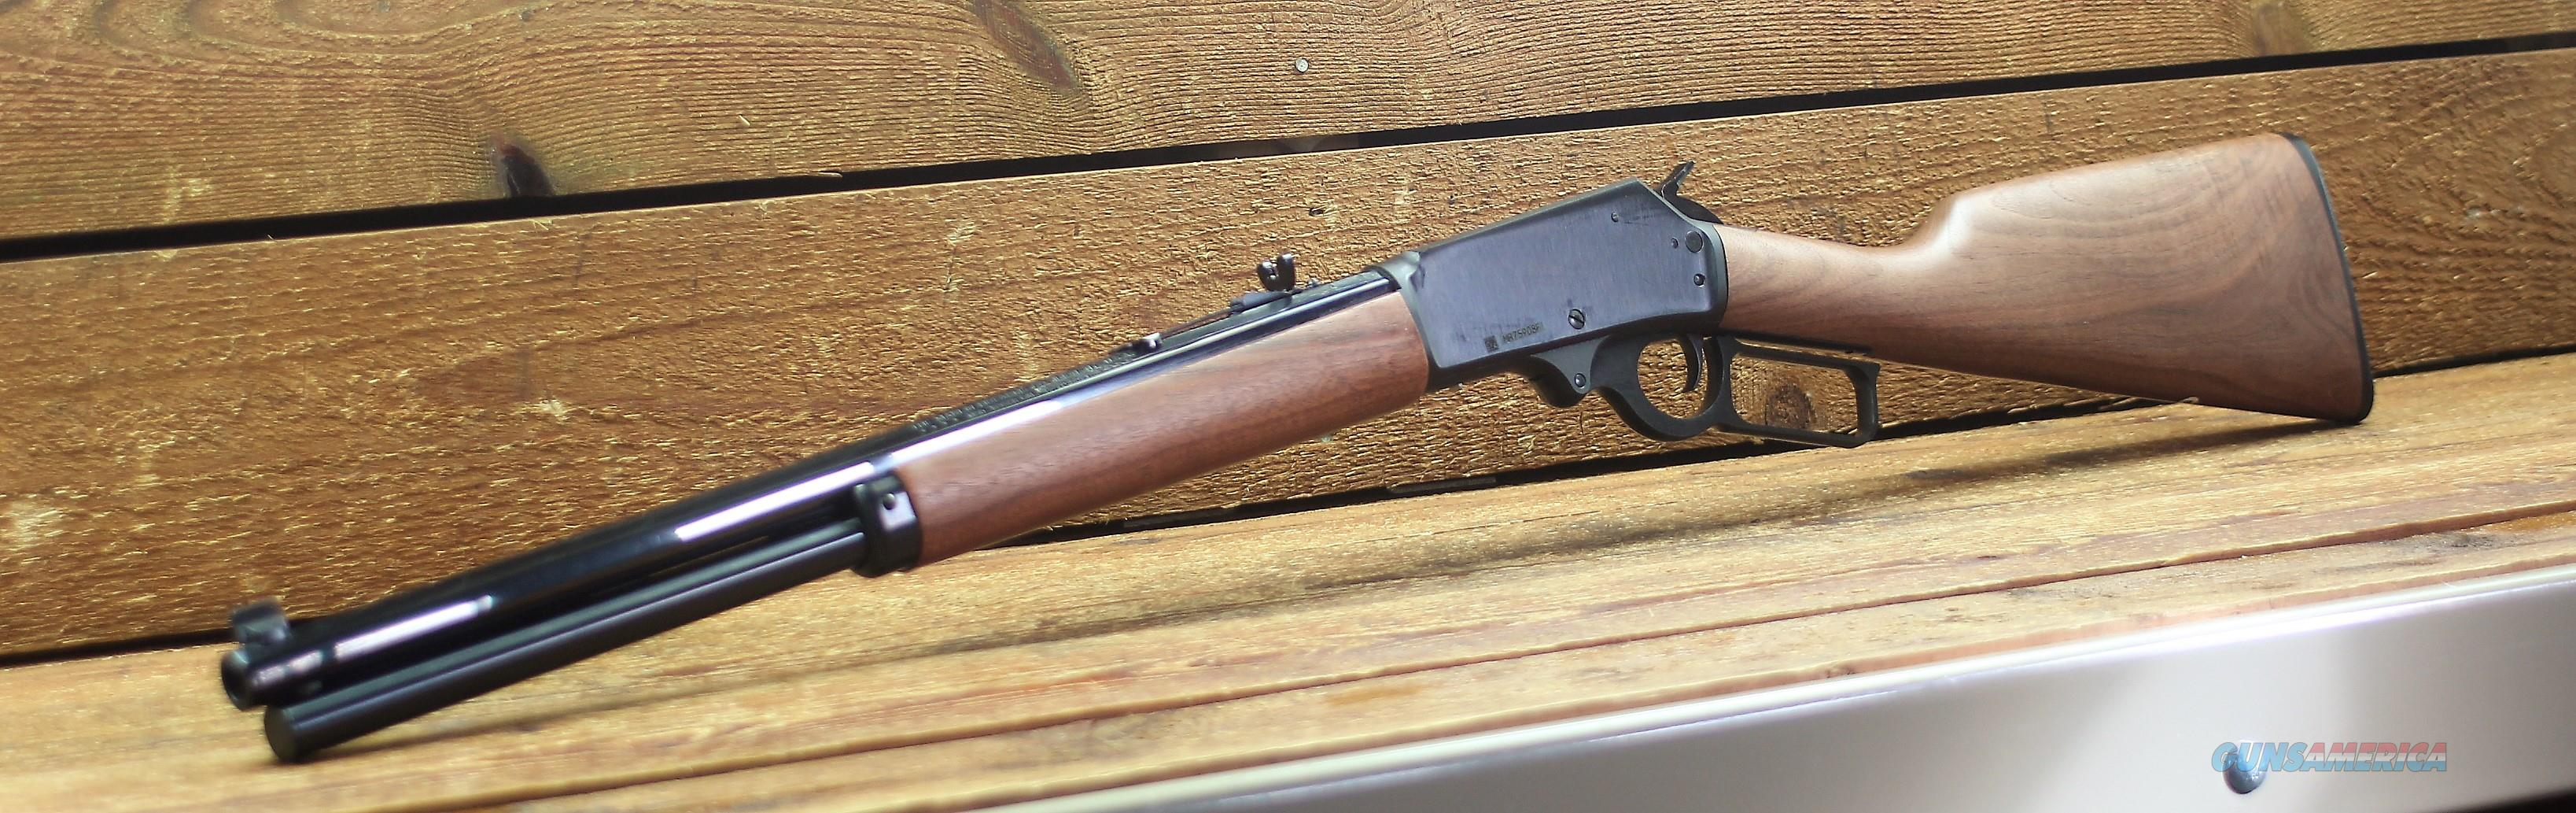 Marlin 1895 Cowboy Action Walnut Stock Rifle 70458, 45-70 Government Octagon Muzzle EASY PAY $68  Guns > Rifles > Marlin Rifles > Modern > Lever Action